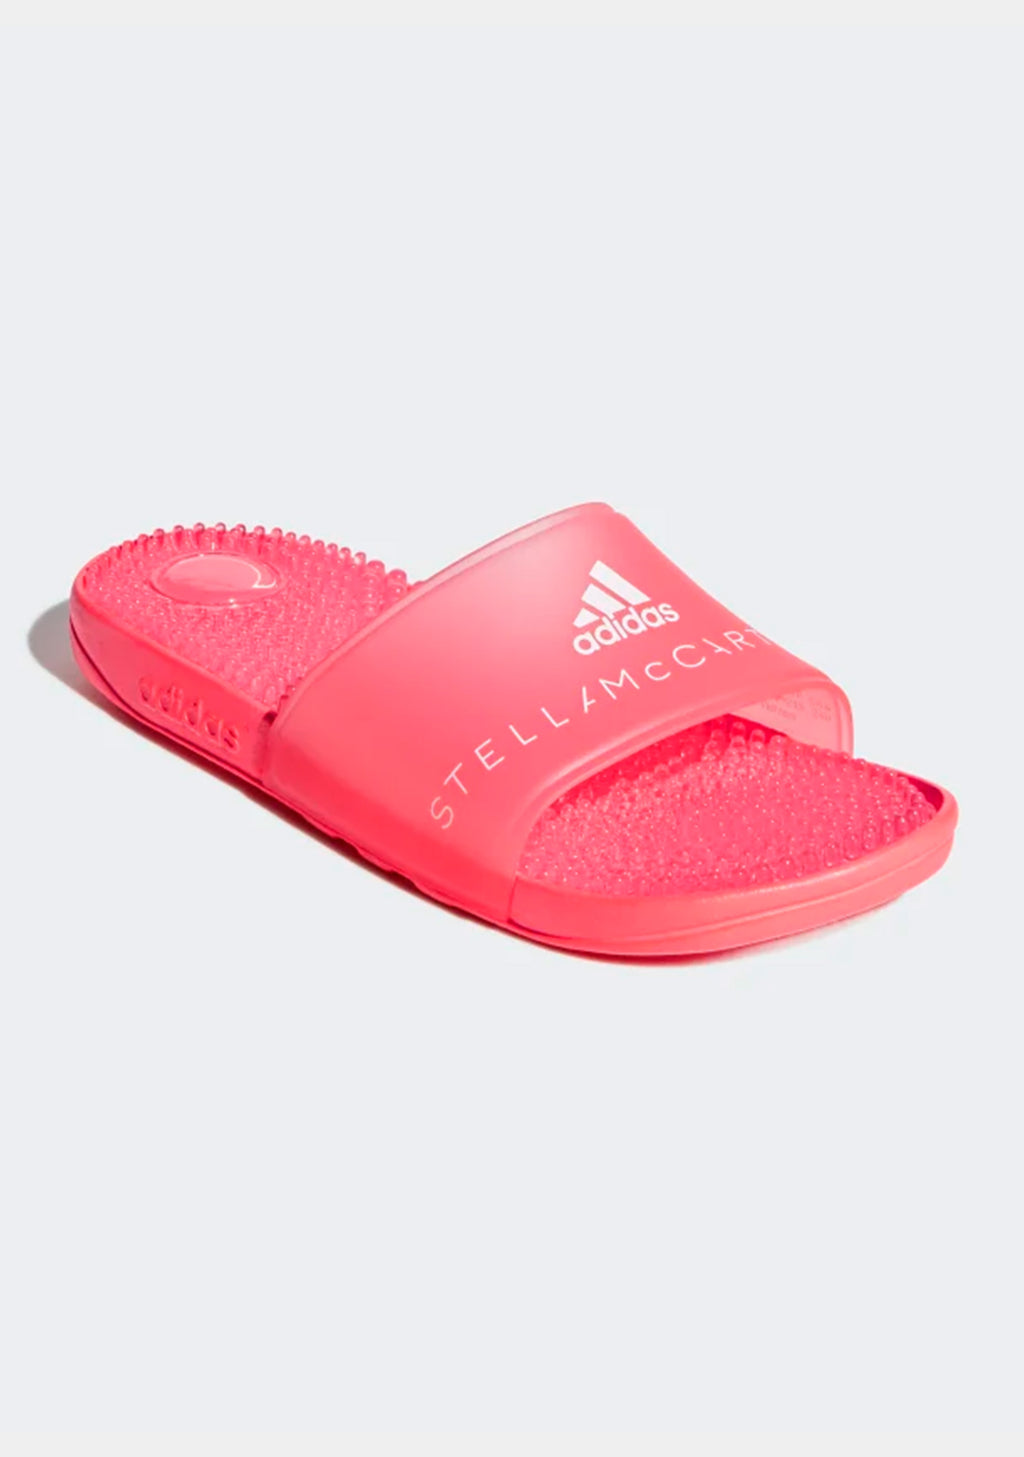 ADIDAS X STELLA MCCARTNEY WOMENS ADISSAGE SLIDES <BR> D97731